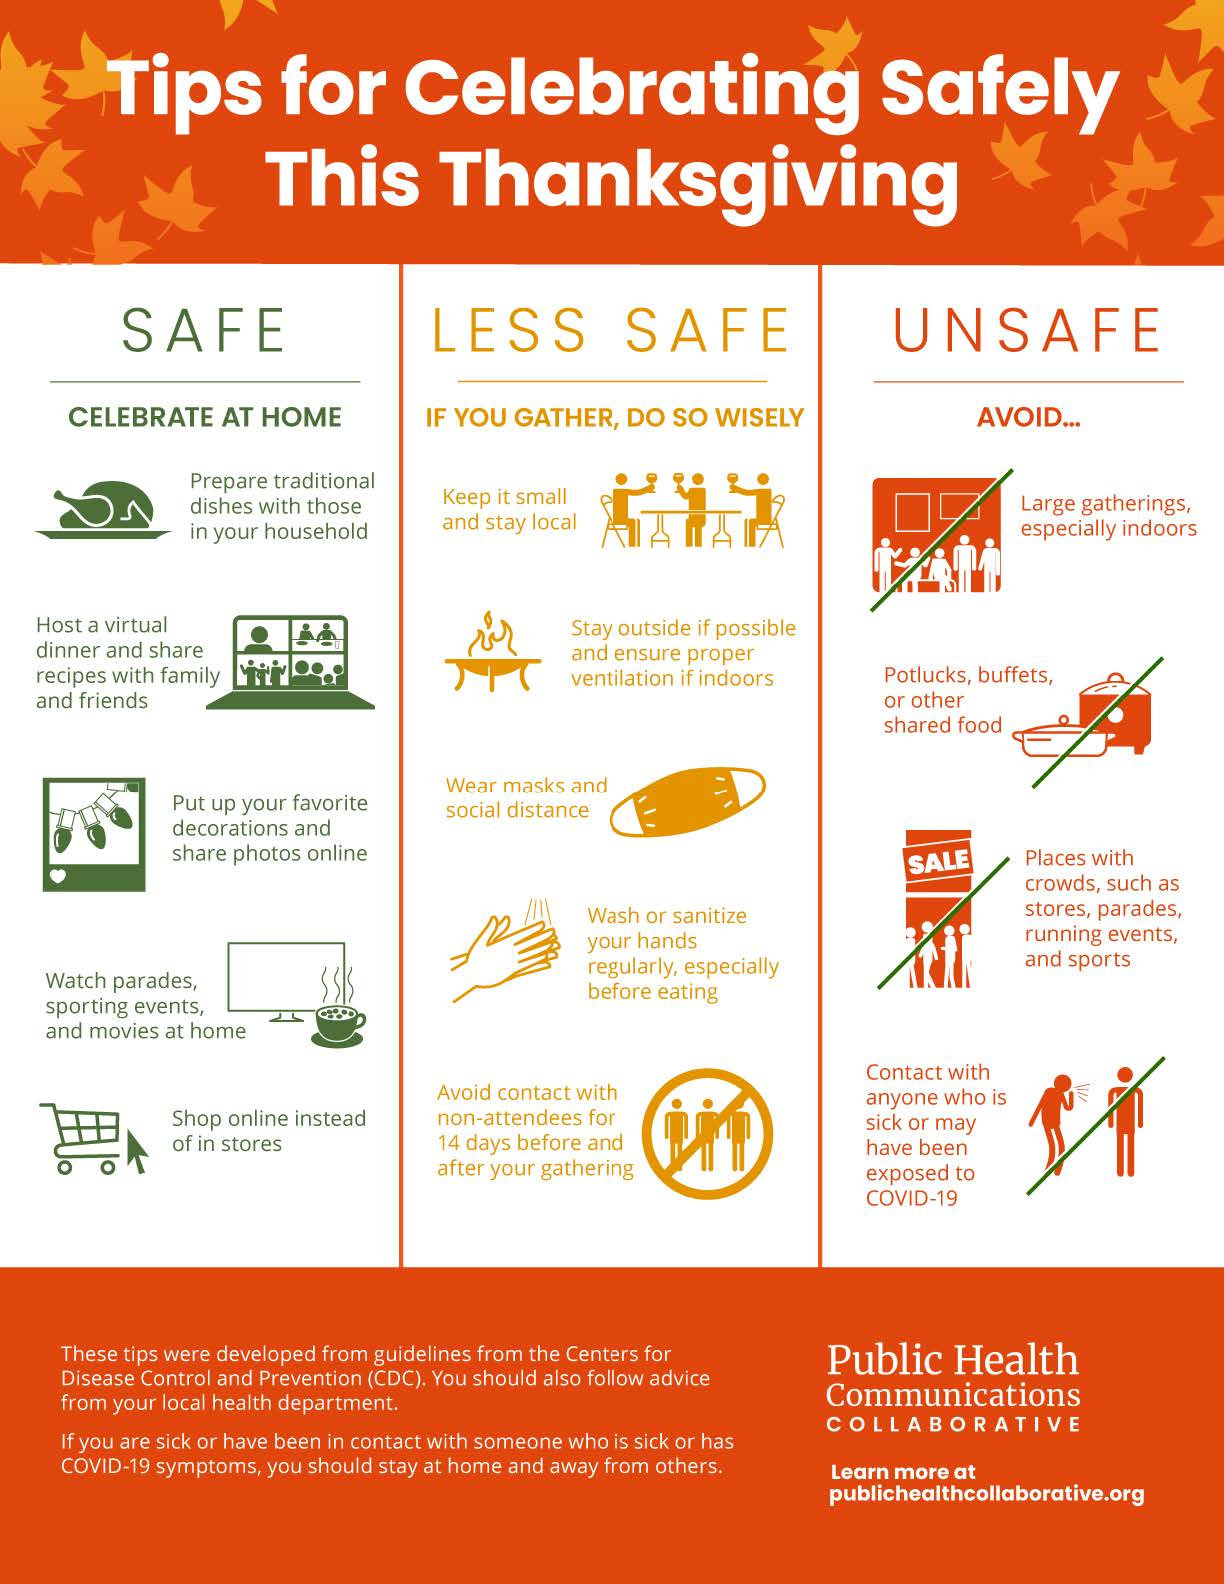 Tips for Celebrating safely this Thanksgiving holiday